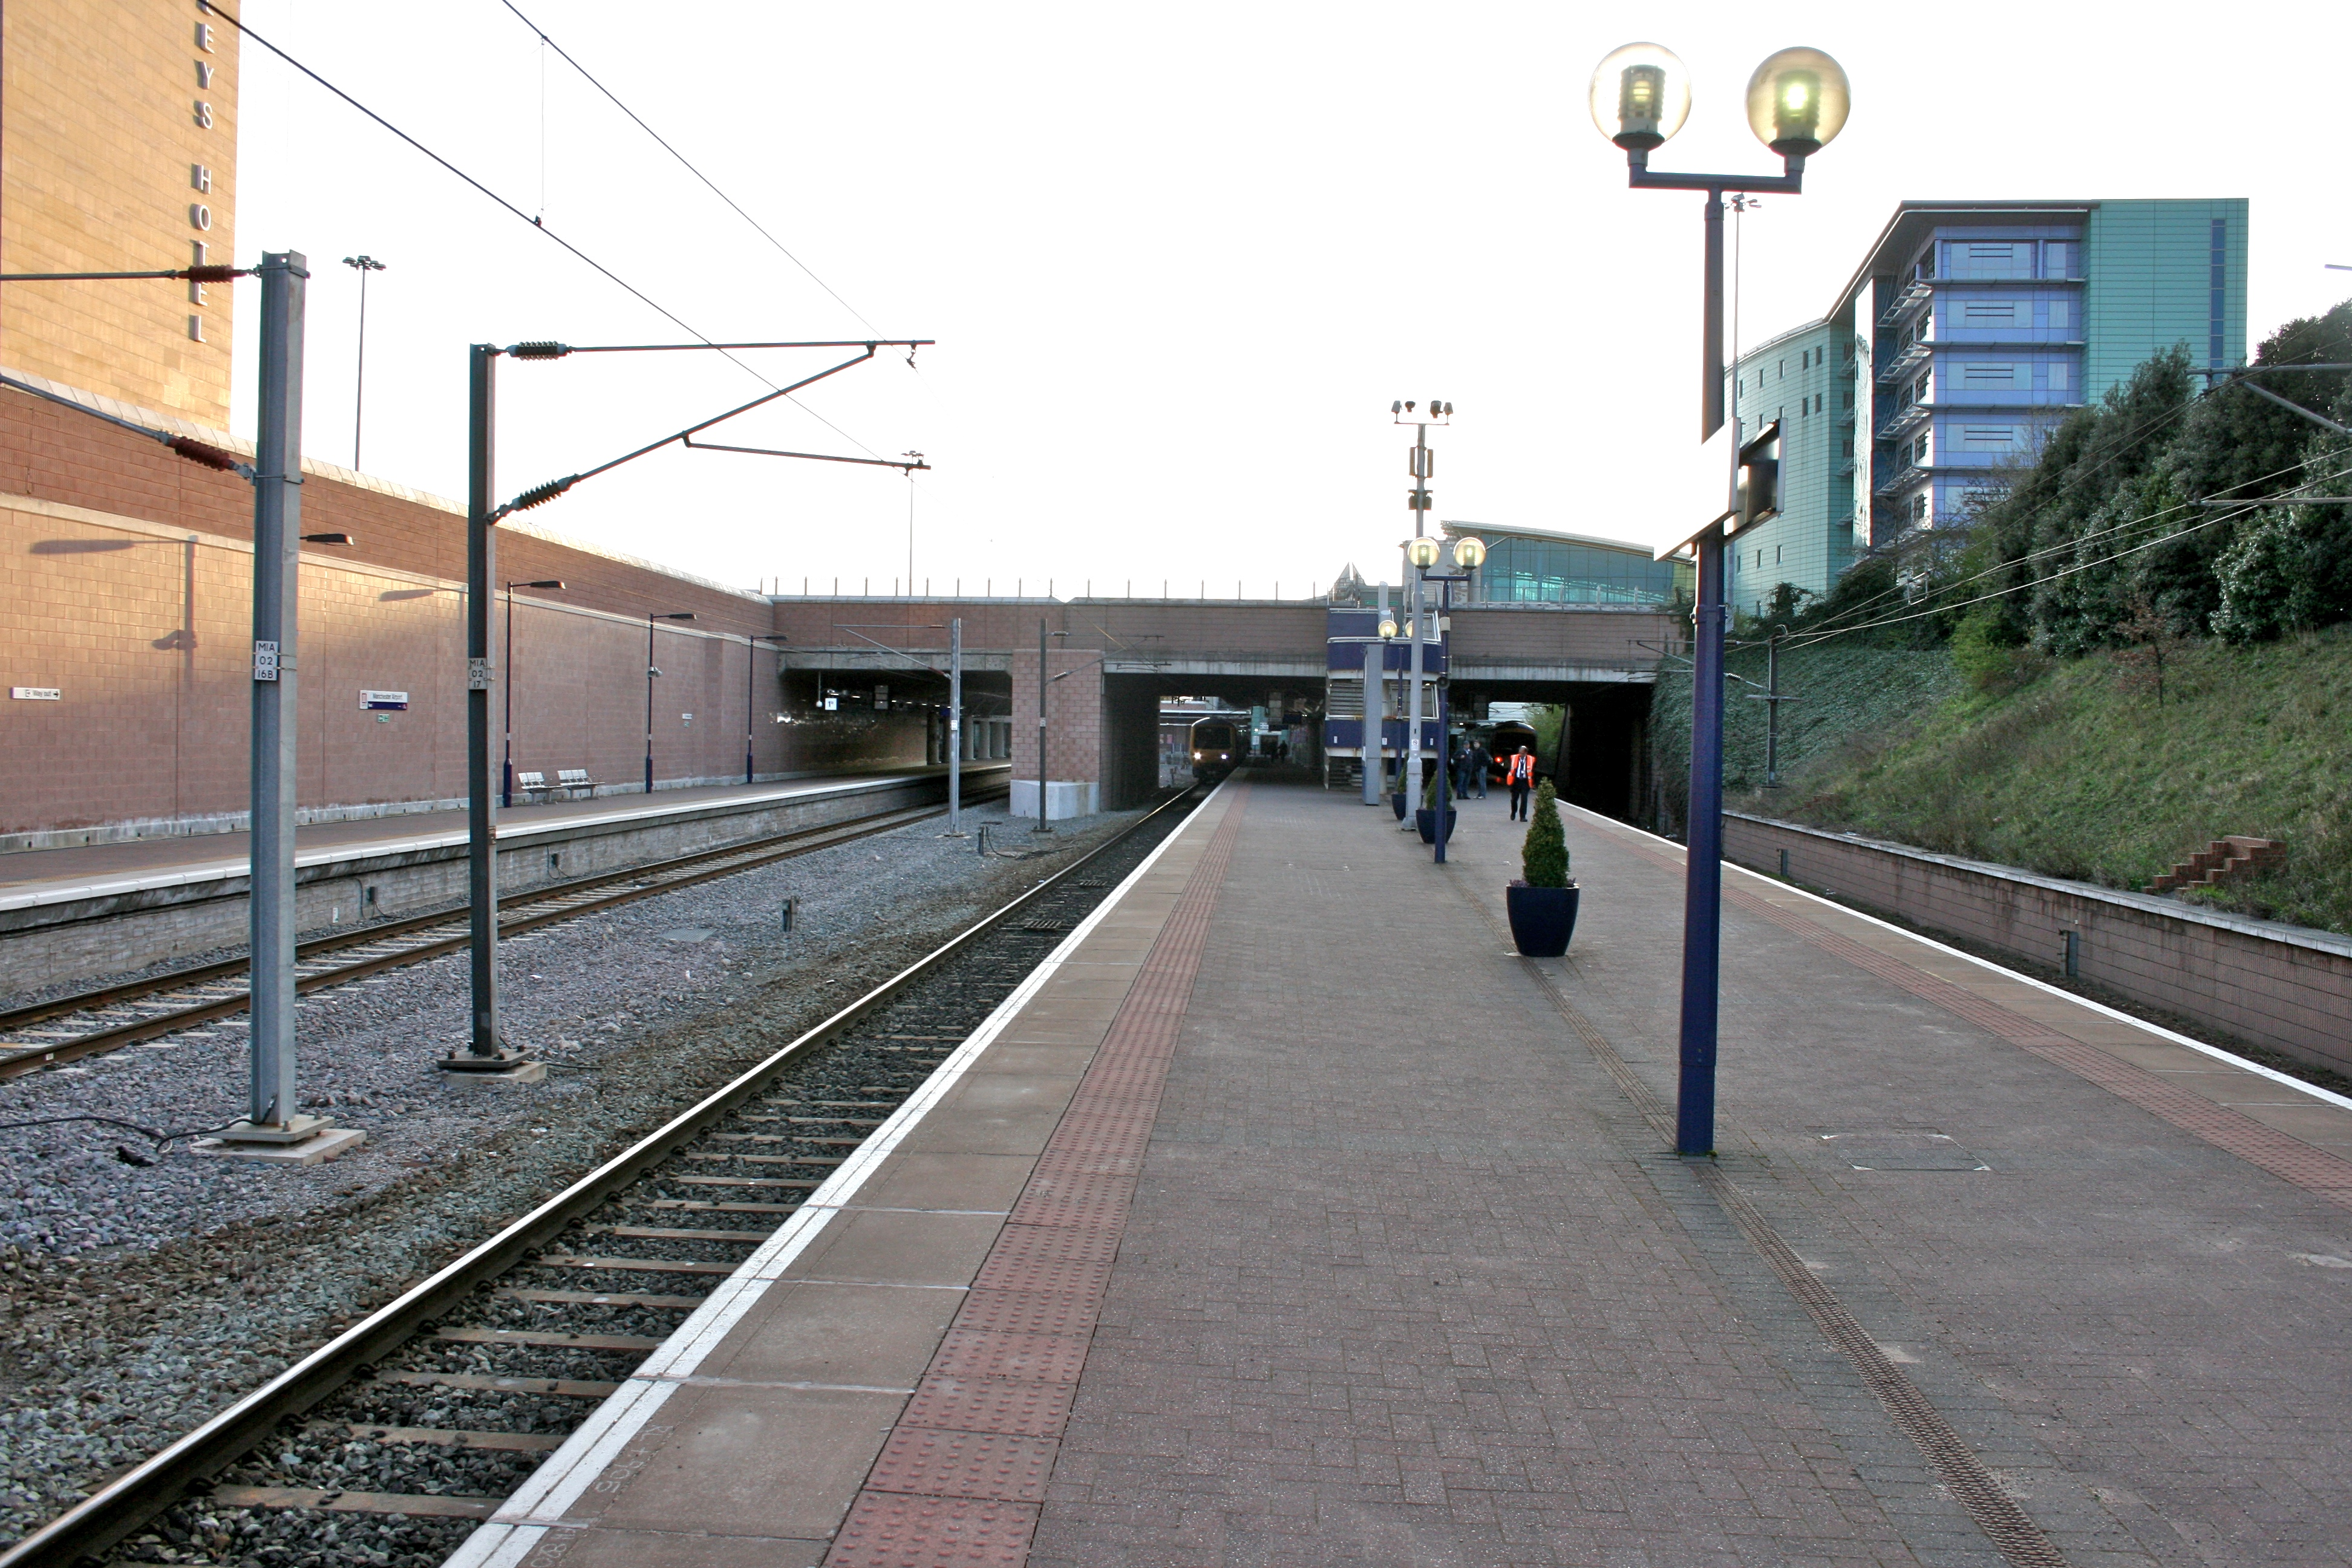 File:Manchester Airport Railway Station jpg - Wikimedia Commons